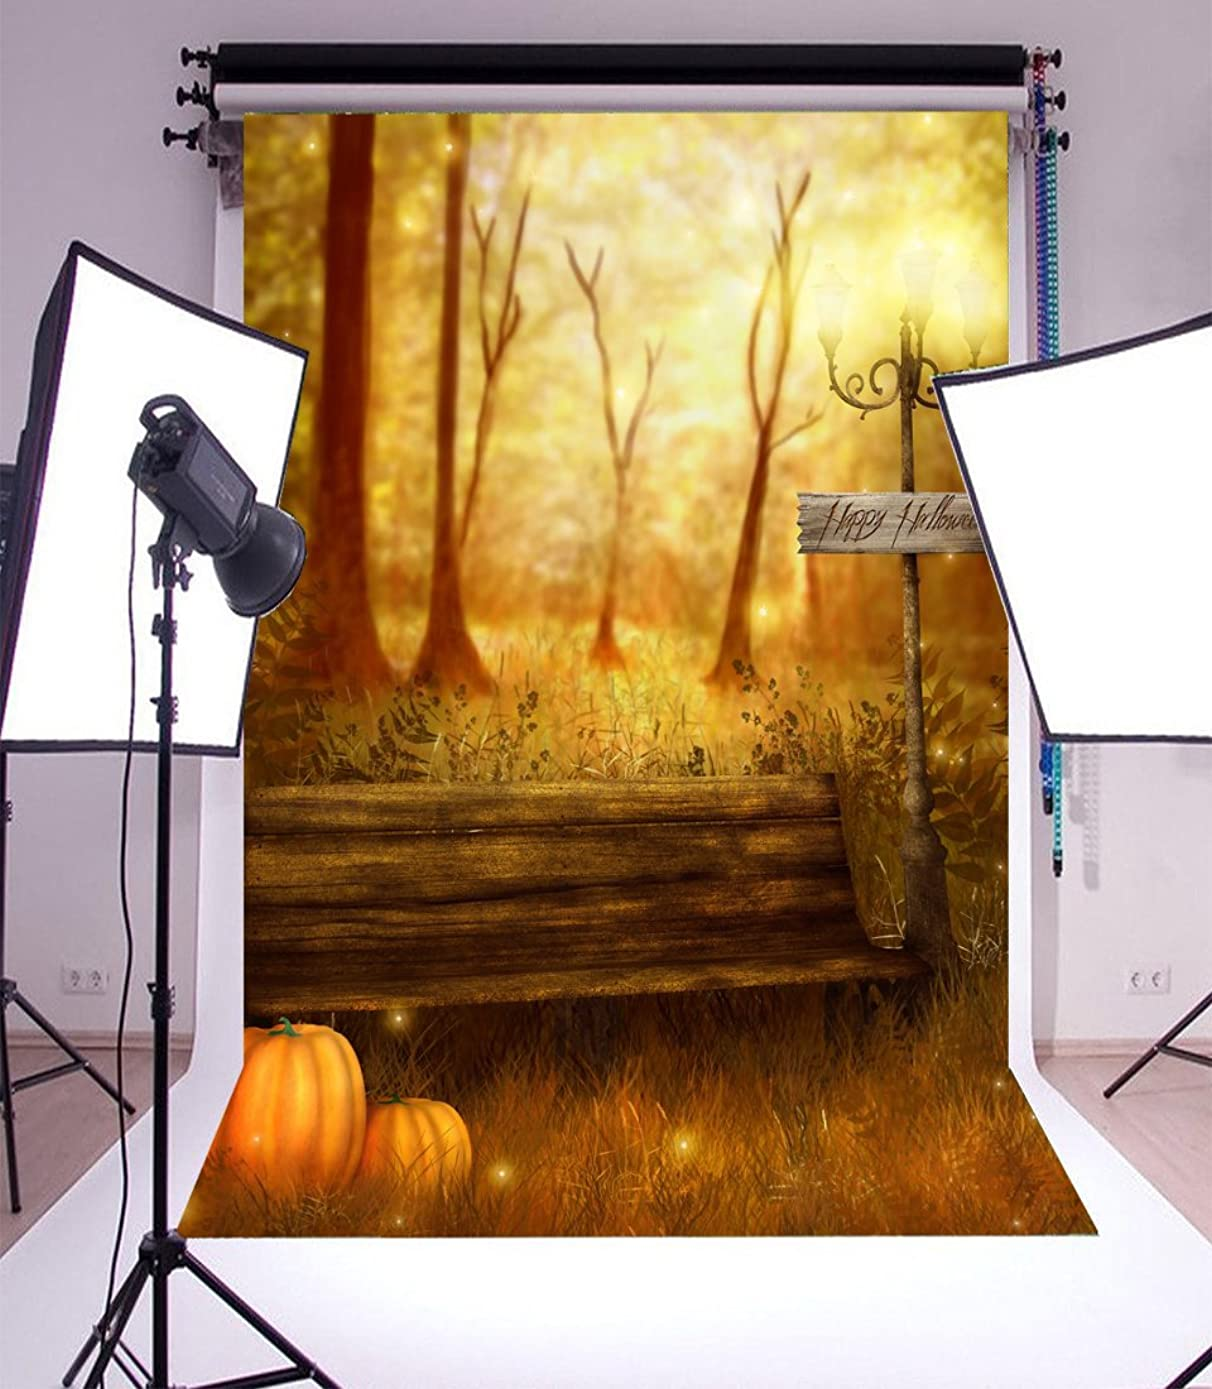 Laeacco Vinyl Backdrop 5x7FT Photography Background Happy Halloween Grove Trees Wood Bench Road Lamp Pumpkins Elf Scene Background 1.5(W) x2.2(H) m Backdrop for Video Photo Studio Props